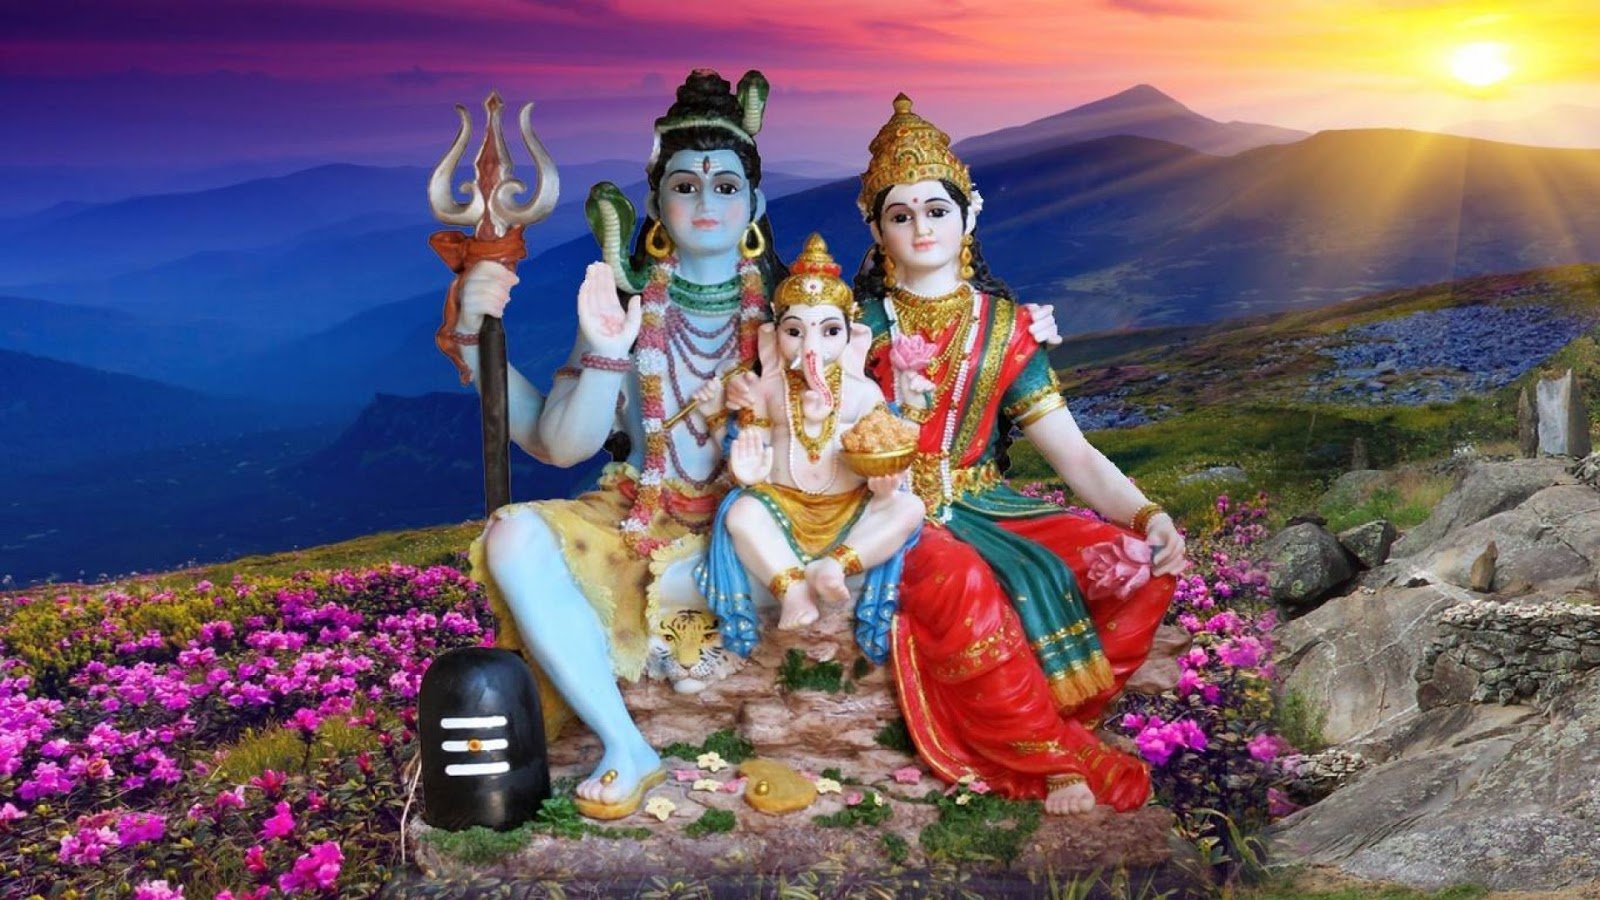 Cool Wallpaper High Resolution Lord Ayyappa - Shiva-Parvati-Ganesh-Family-Desktop-Wallpaper-1366x768-1920x1080  Best Photo Reference_135785.jpg